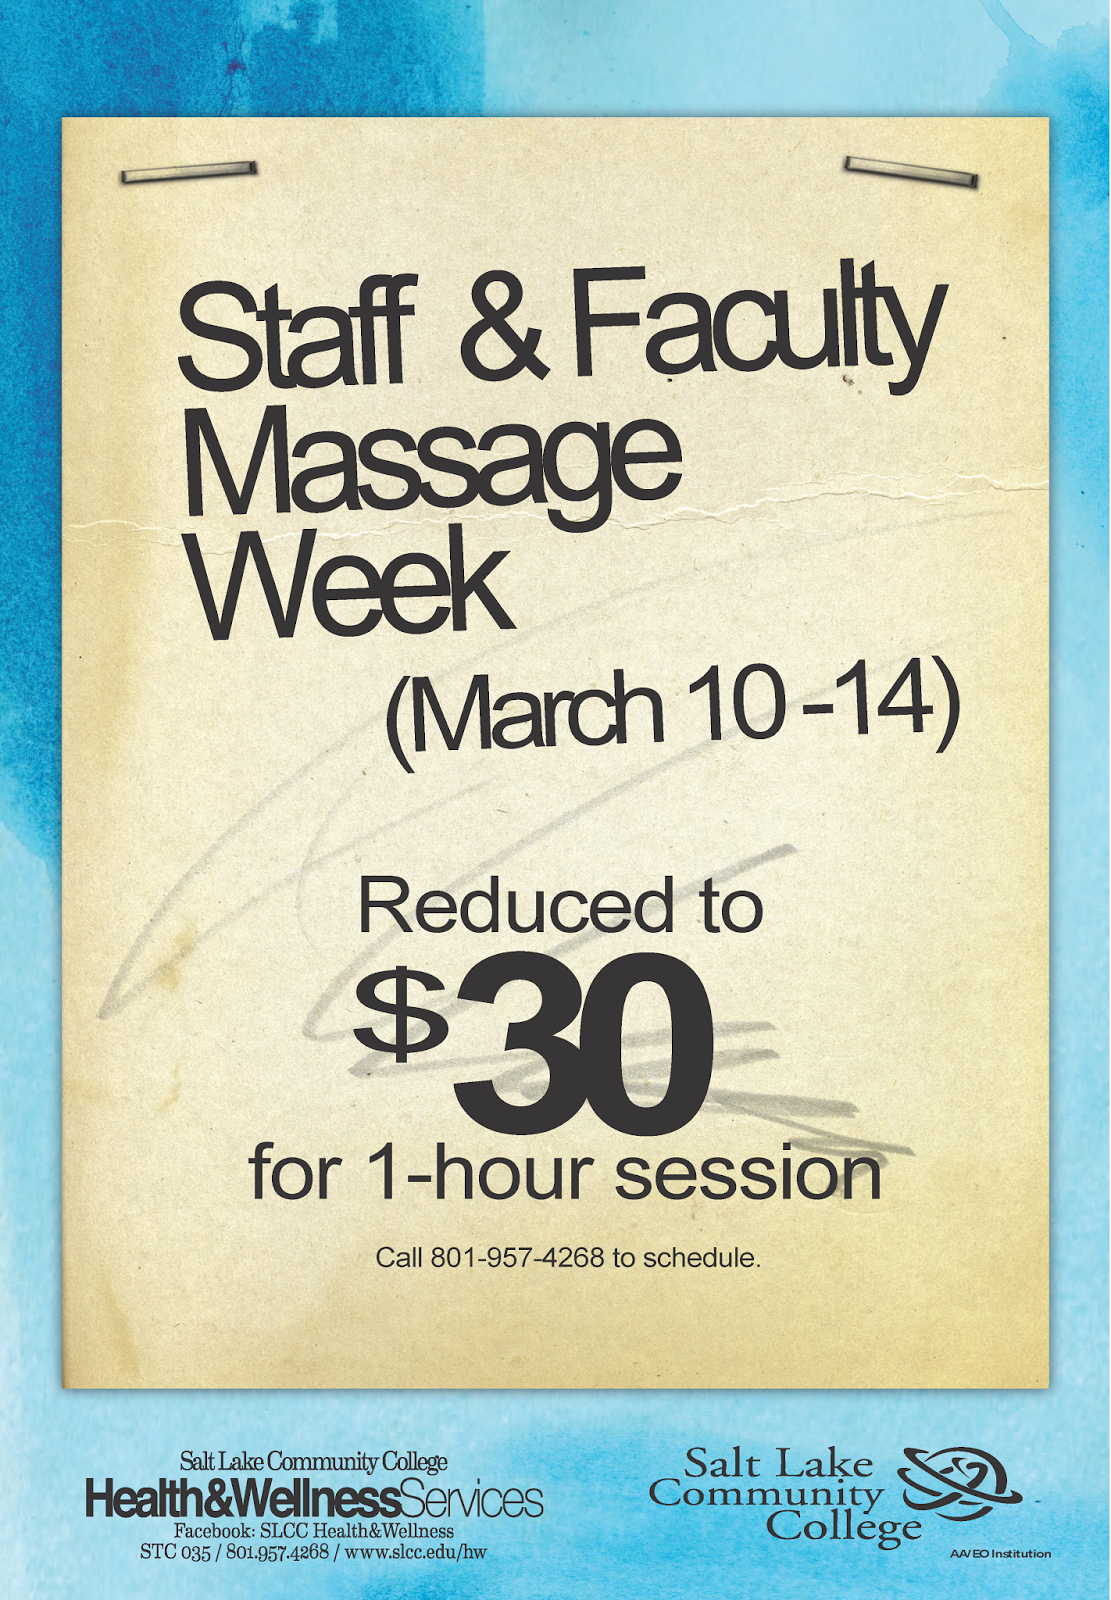 Staff and Faculty Massage Week: March 10-14 reduced to $30 for 1-hour session. Call 801-957-4268 to schedule.   Salt Lake Community College Health & Wellness Services. STC 035. (801) 957-4268.  Individuals who require ADA accommodations for this event, contact the Disability Resource Center at: (801) 957-4659.